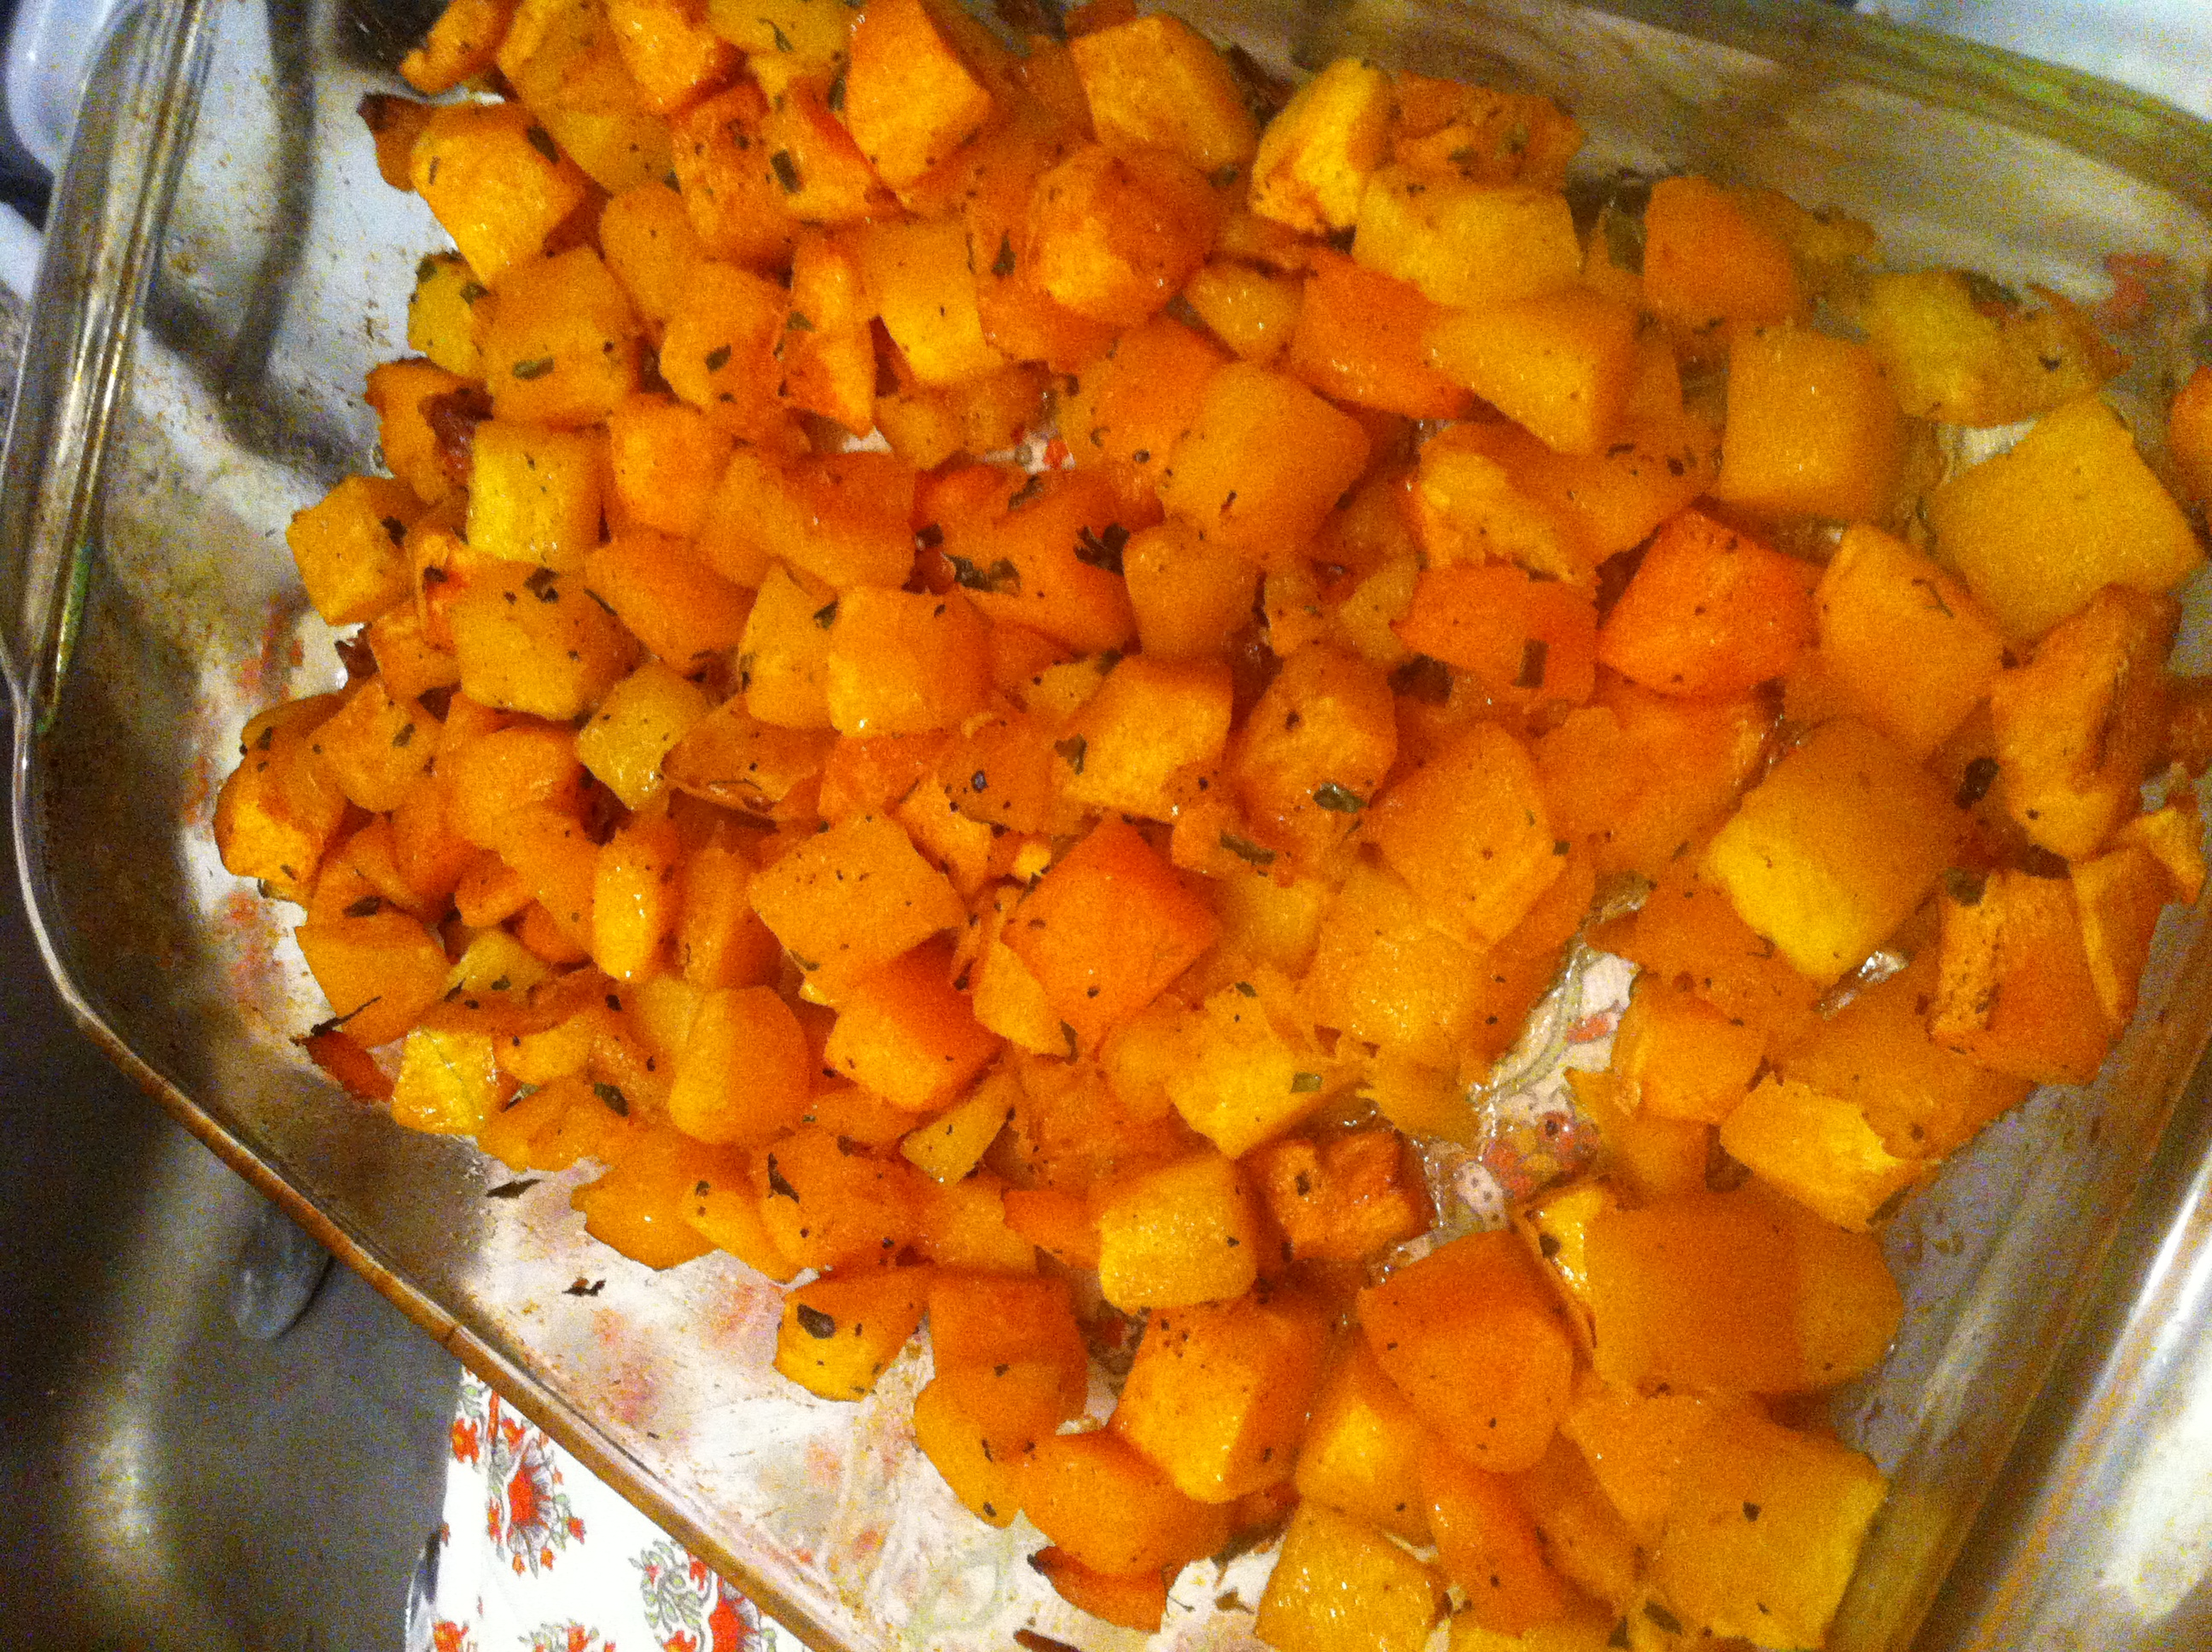 Roasted Butternut Squash with Brown Sugar Butter and Herbs